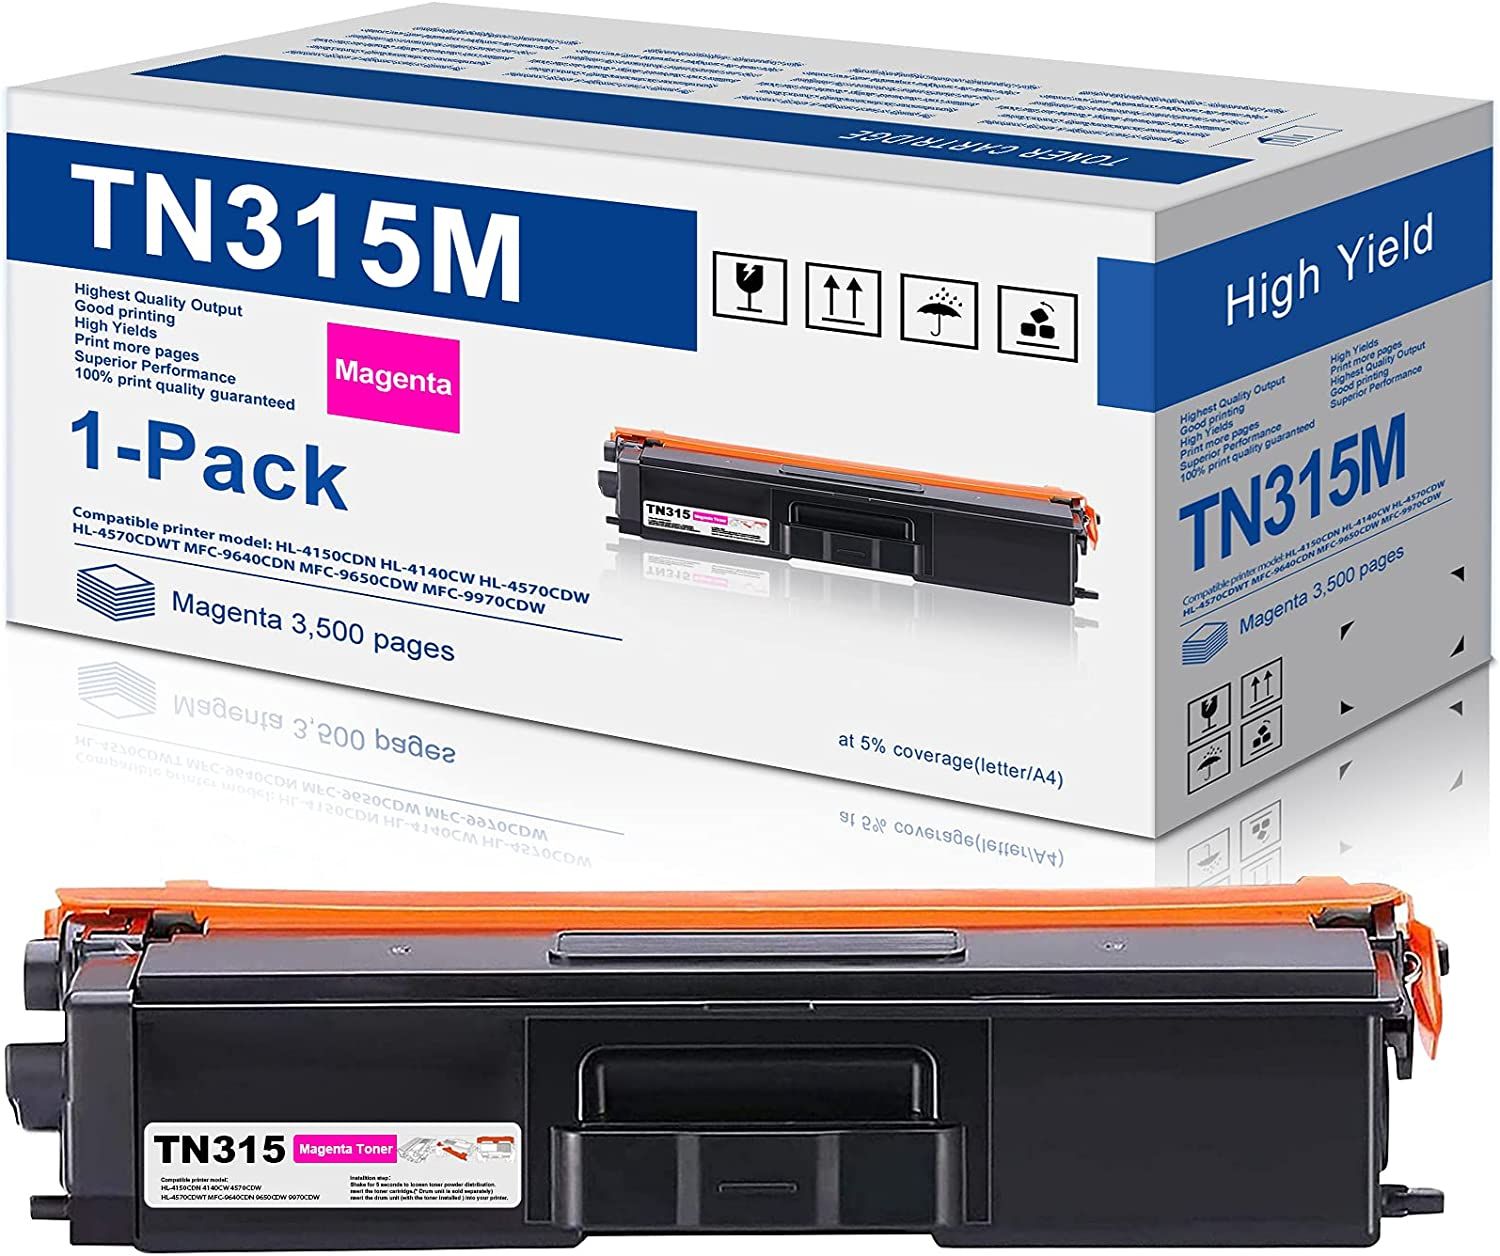 1-Pack Magenta 新作通販 Compatible Toner Cartridge Replacement 最安値挑戦 for Brothe